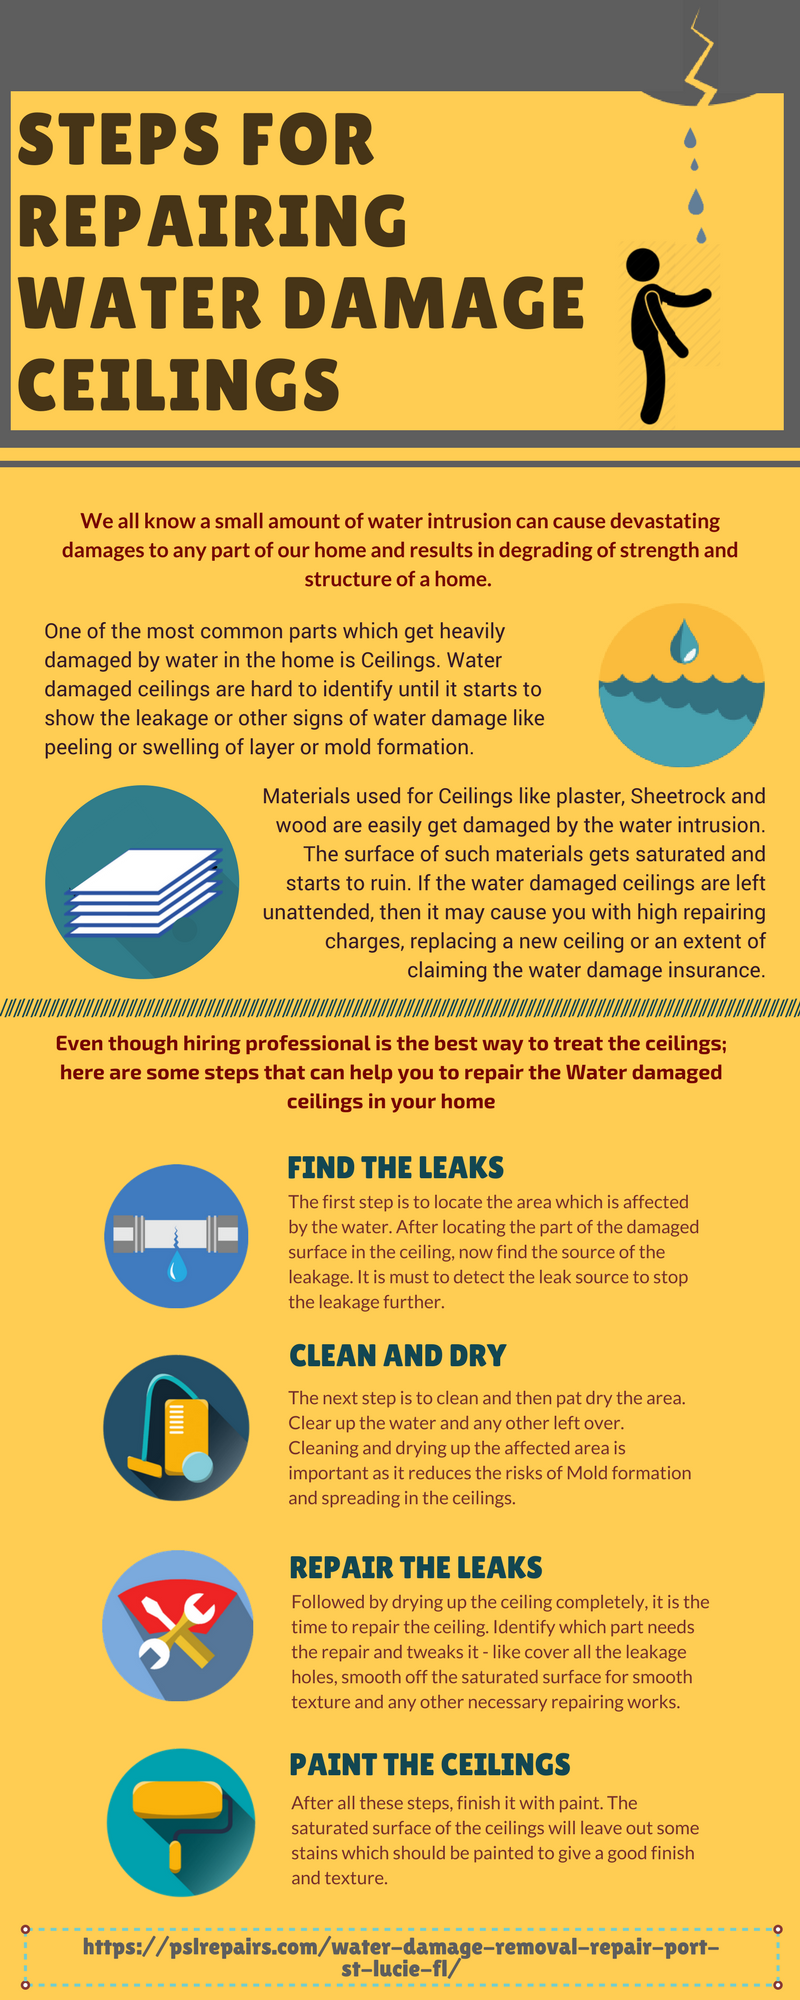 Water Damaged Ceilings Are Hard To Identify Until It Starts To Show The Leakage Or Other Signs Of Water Damage Like Pee Water Damage Damage Restoration Damaged